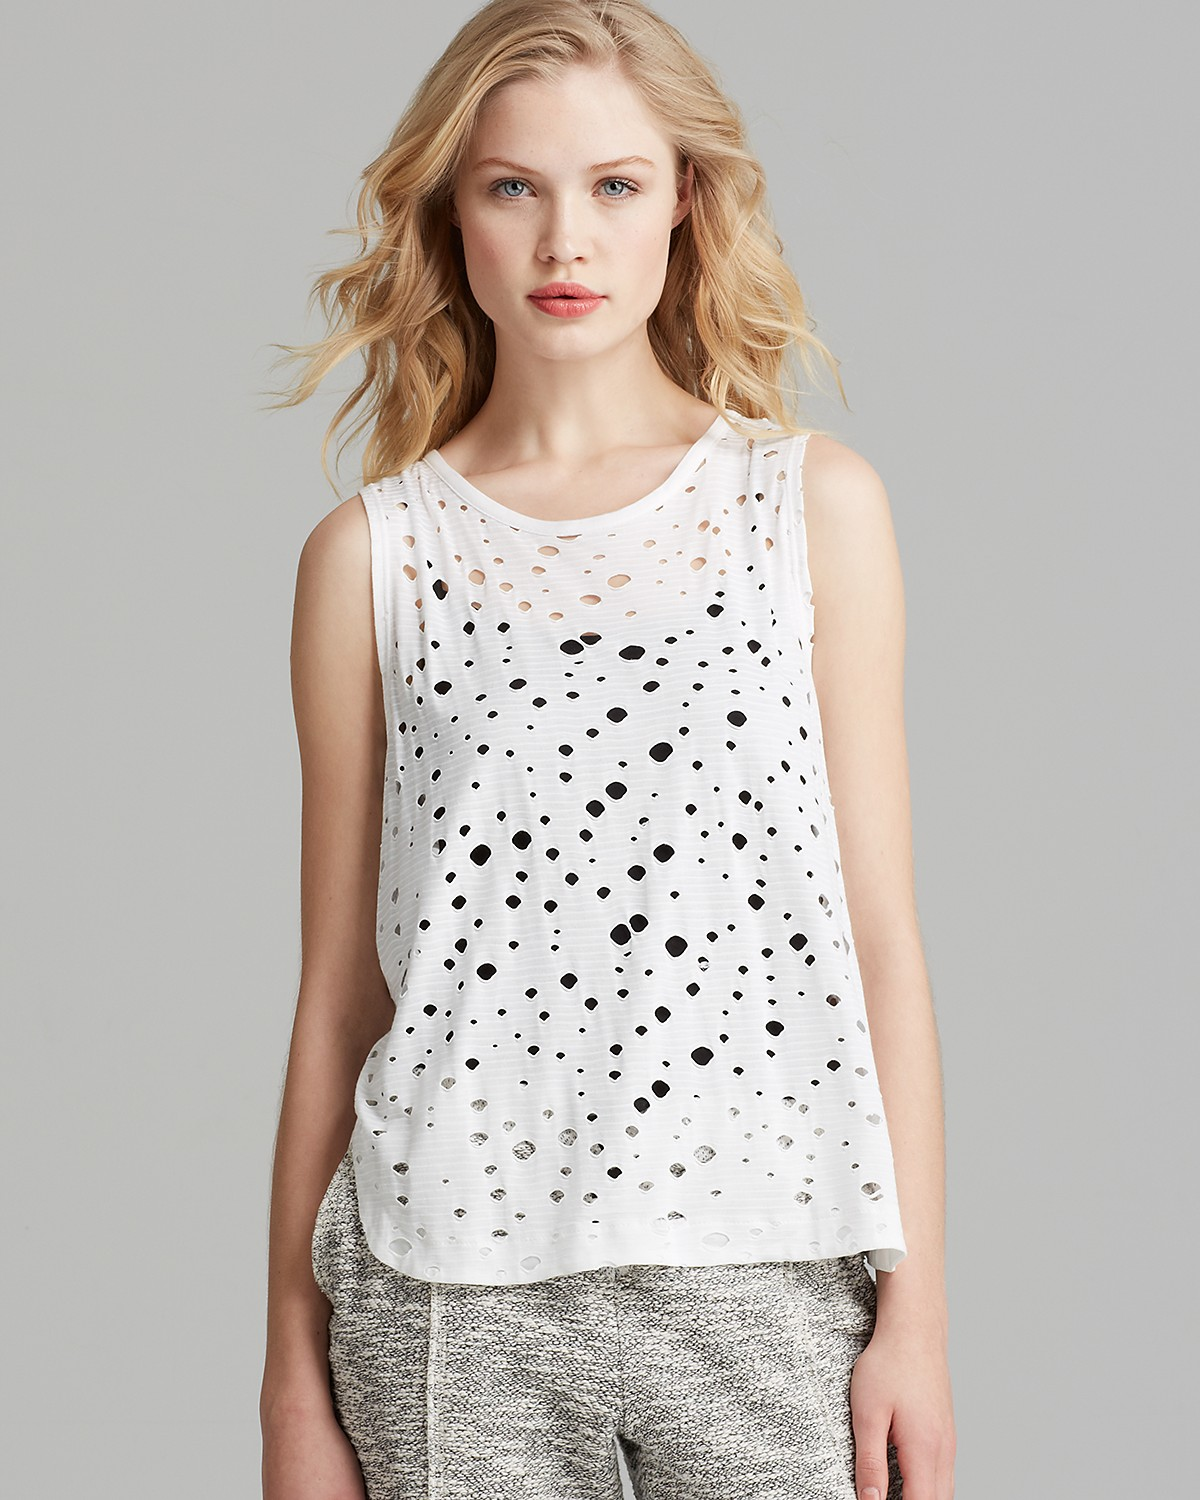 twenty tees Tank - Rippled Perforated Muscle | Bloomingdale's